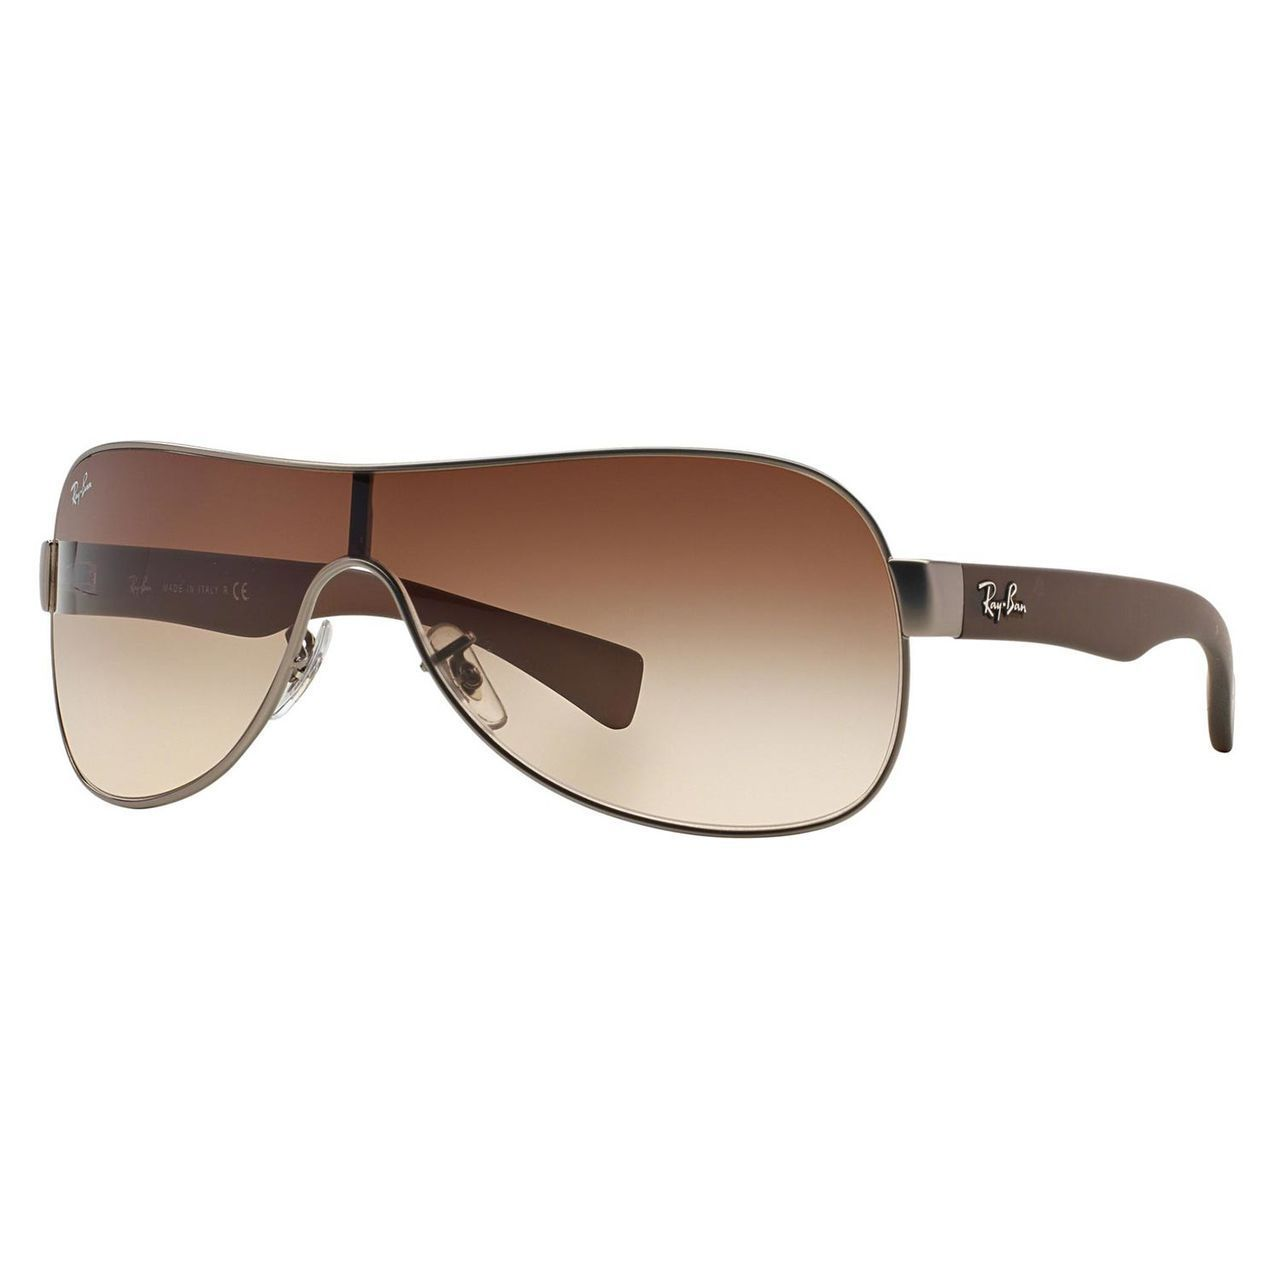 ba60deca69e Shop Ray-Ban RB3471 Shield Sunglasses - 029 13 Matte Gunmetal (Brown  Gradient Lens) - 132mm - Free Shipping Today - Overstock - 10343364